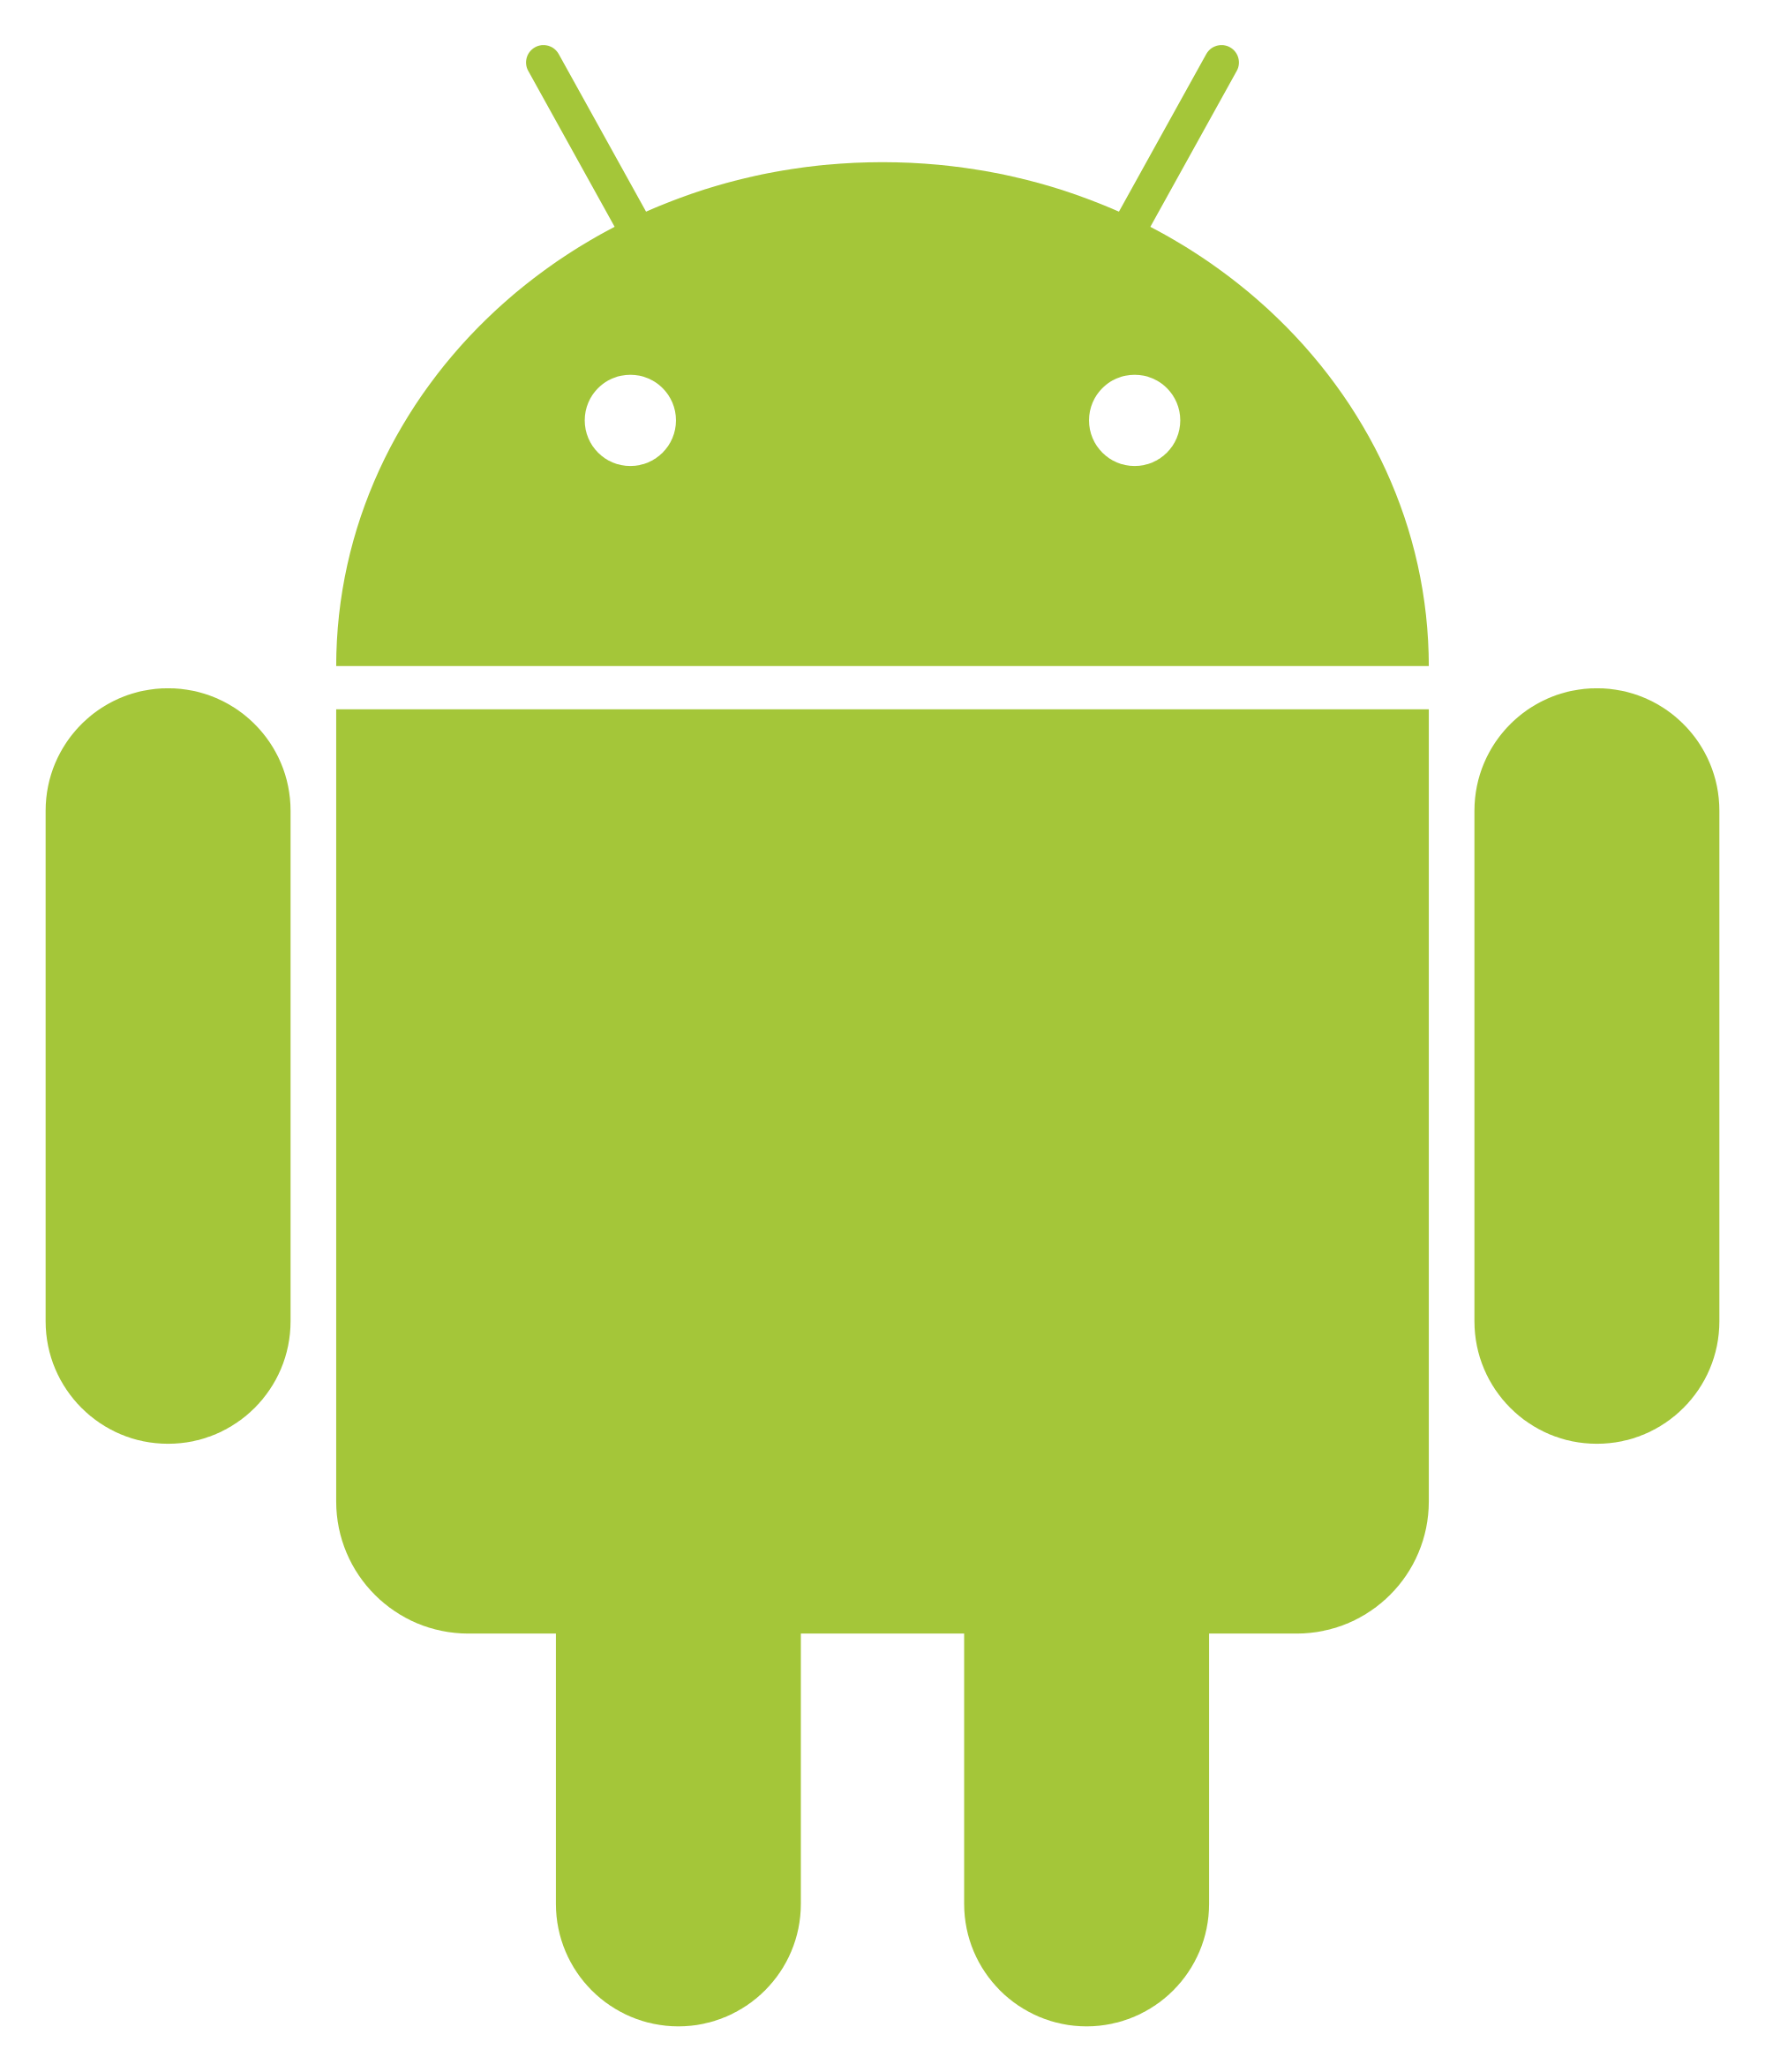 Android logo png images. Technology clipart symbol